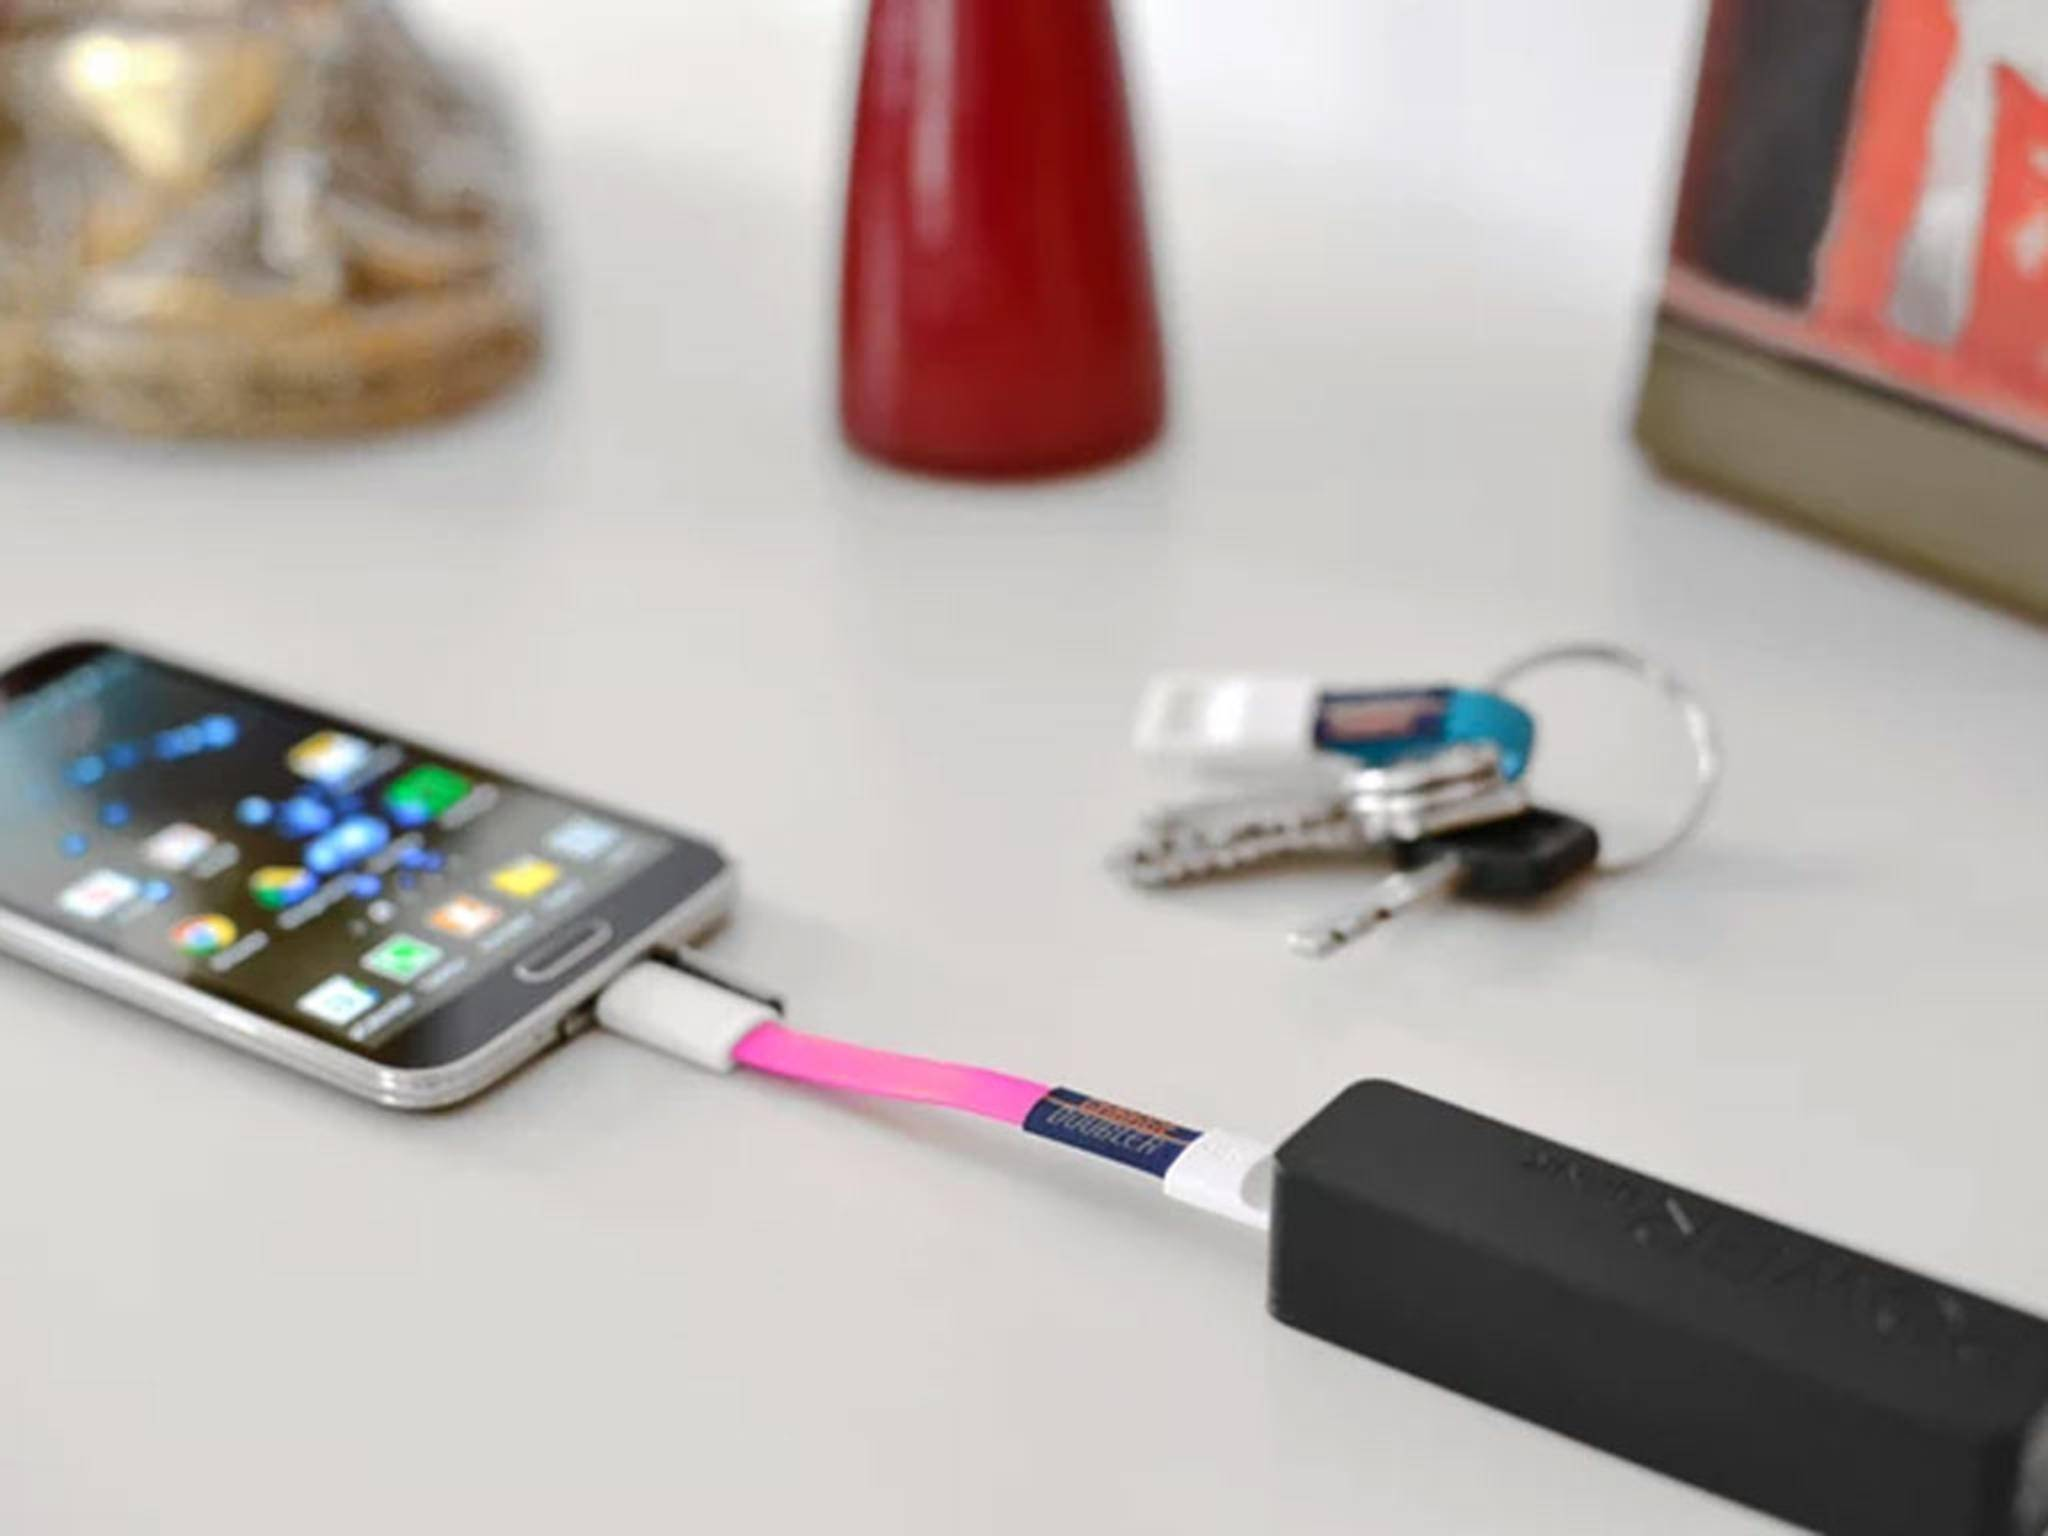 USB Double Charger